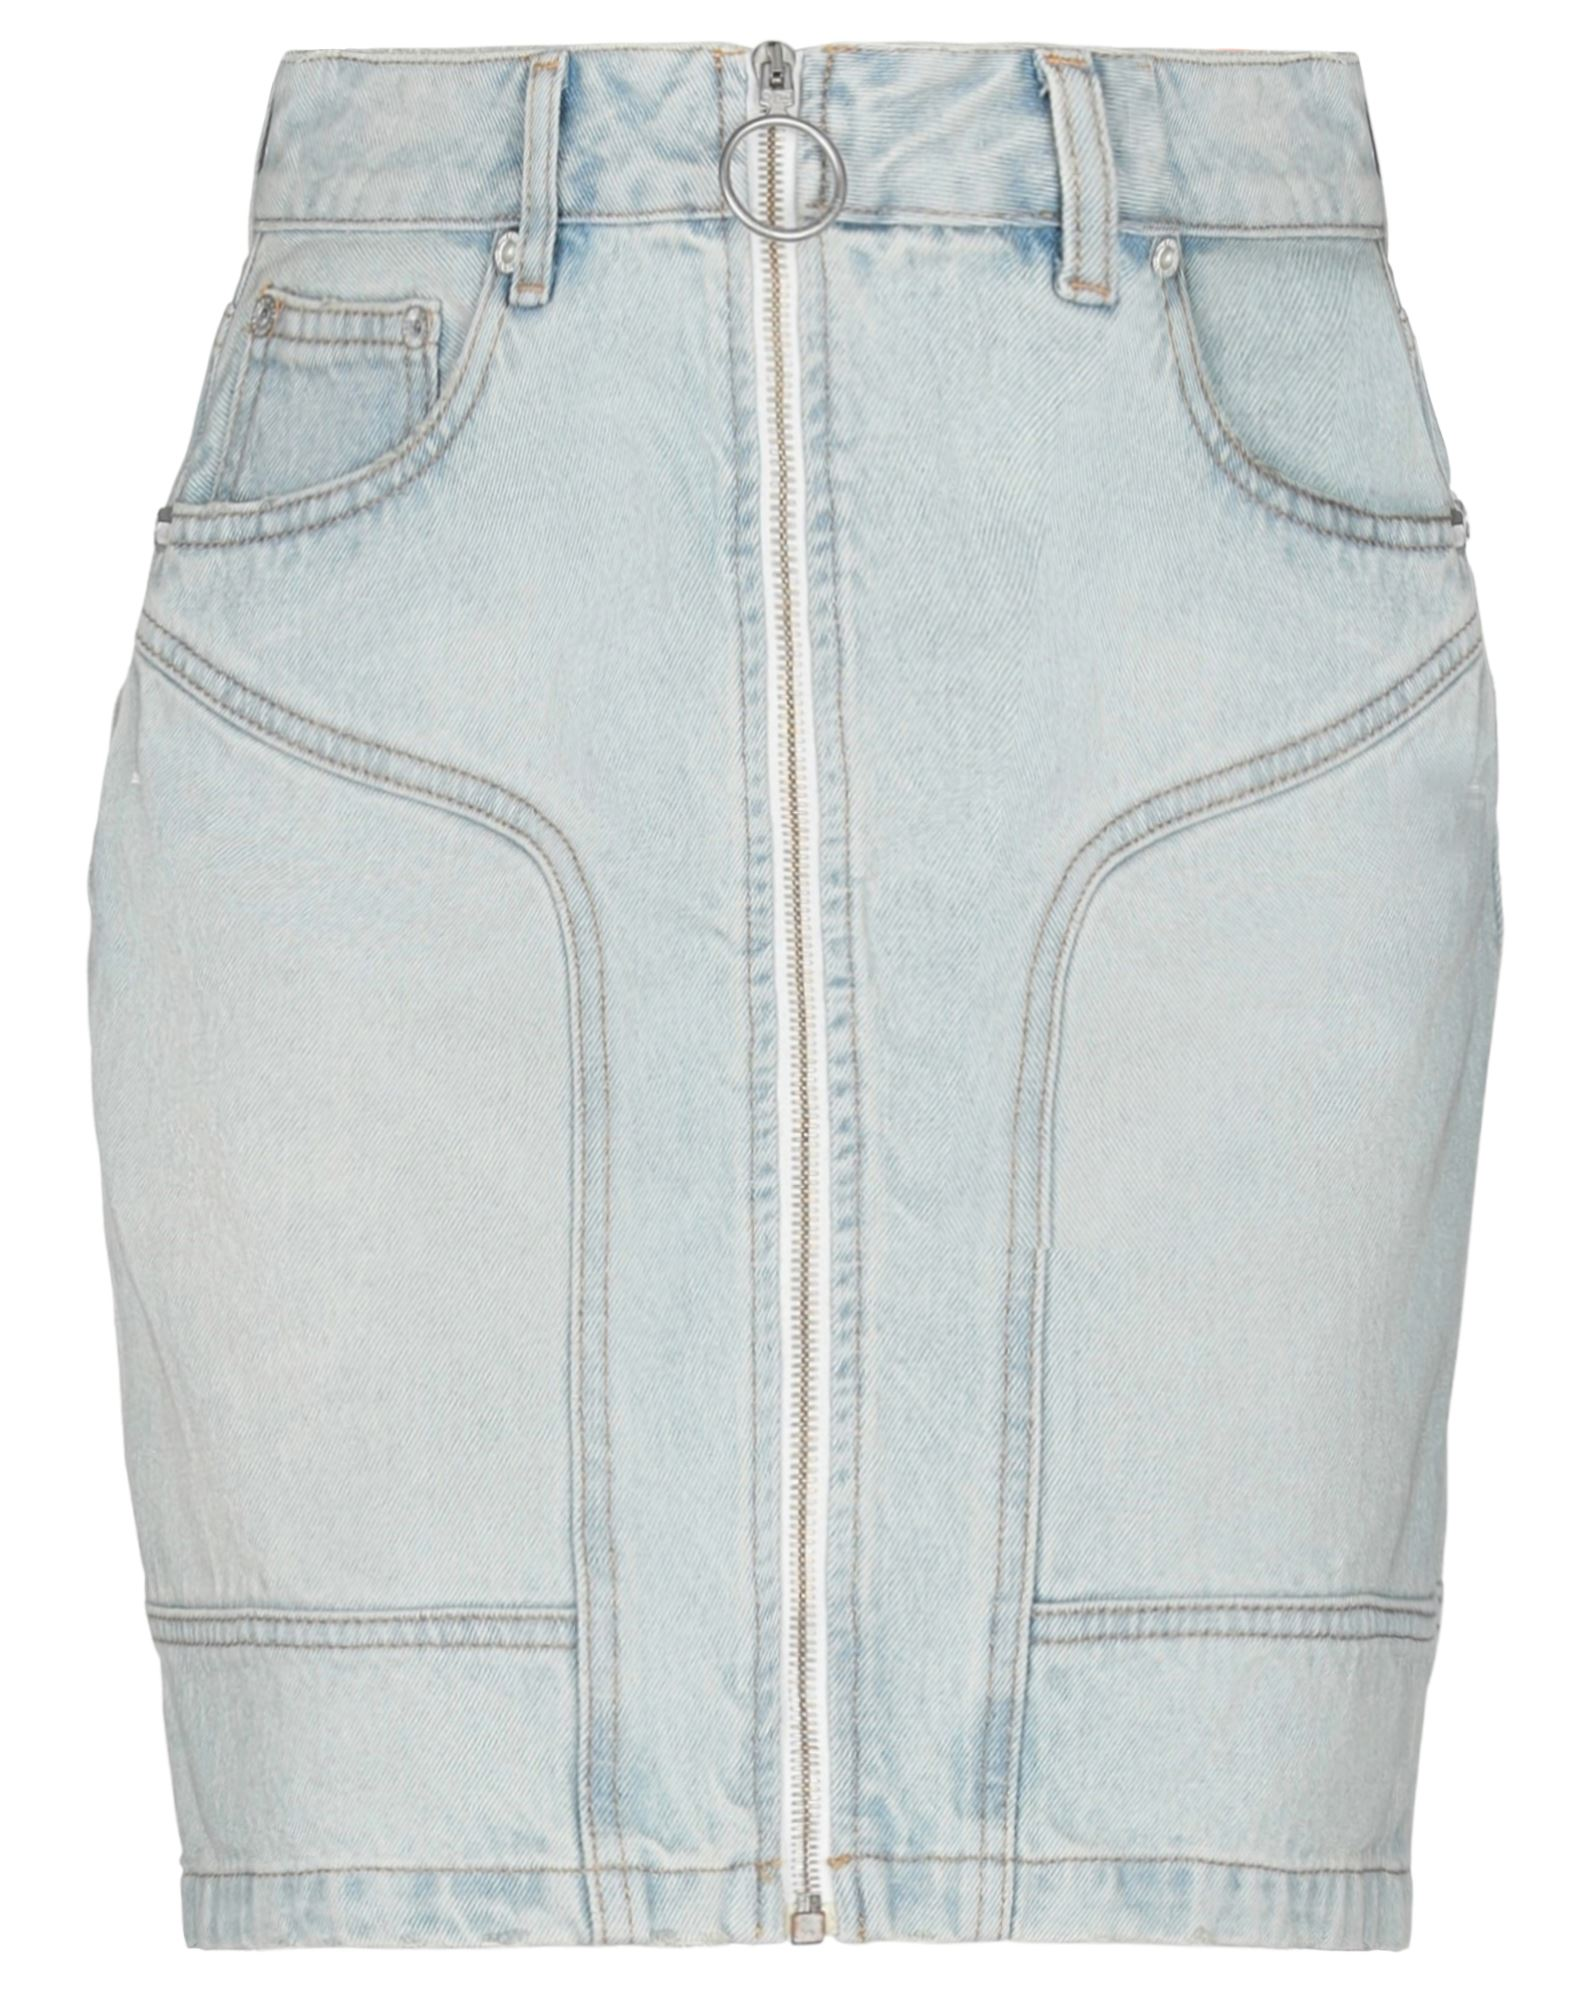 OFF-WHITE™ Denim skirts. denim, logo, solid color, light wash, belt loops, front closure, zipper closure, multipockets, unlined. 100% Cotton